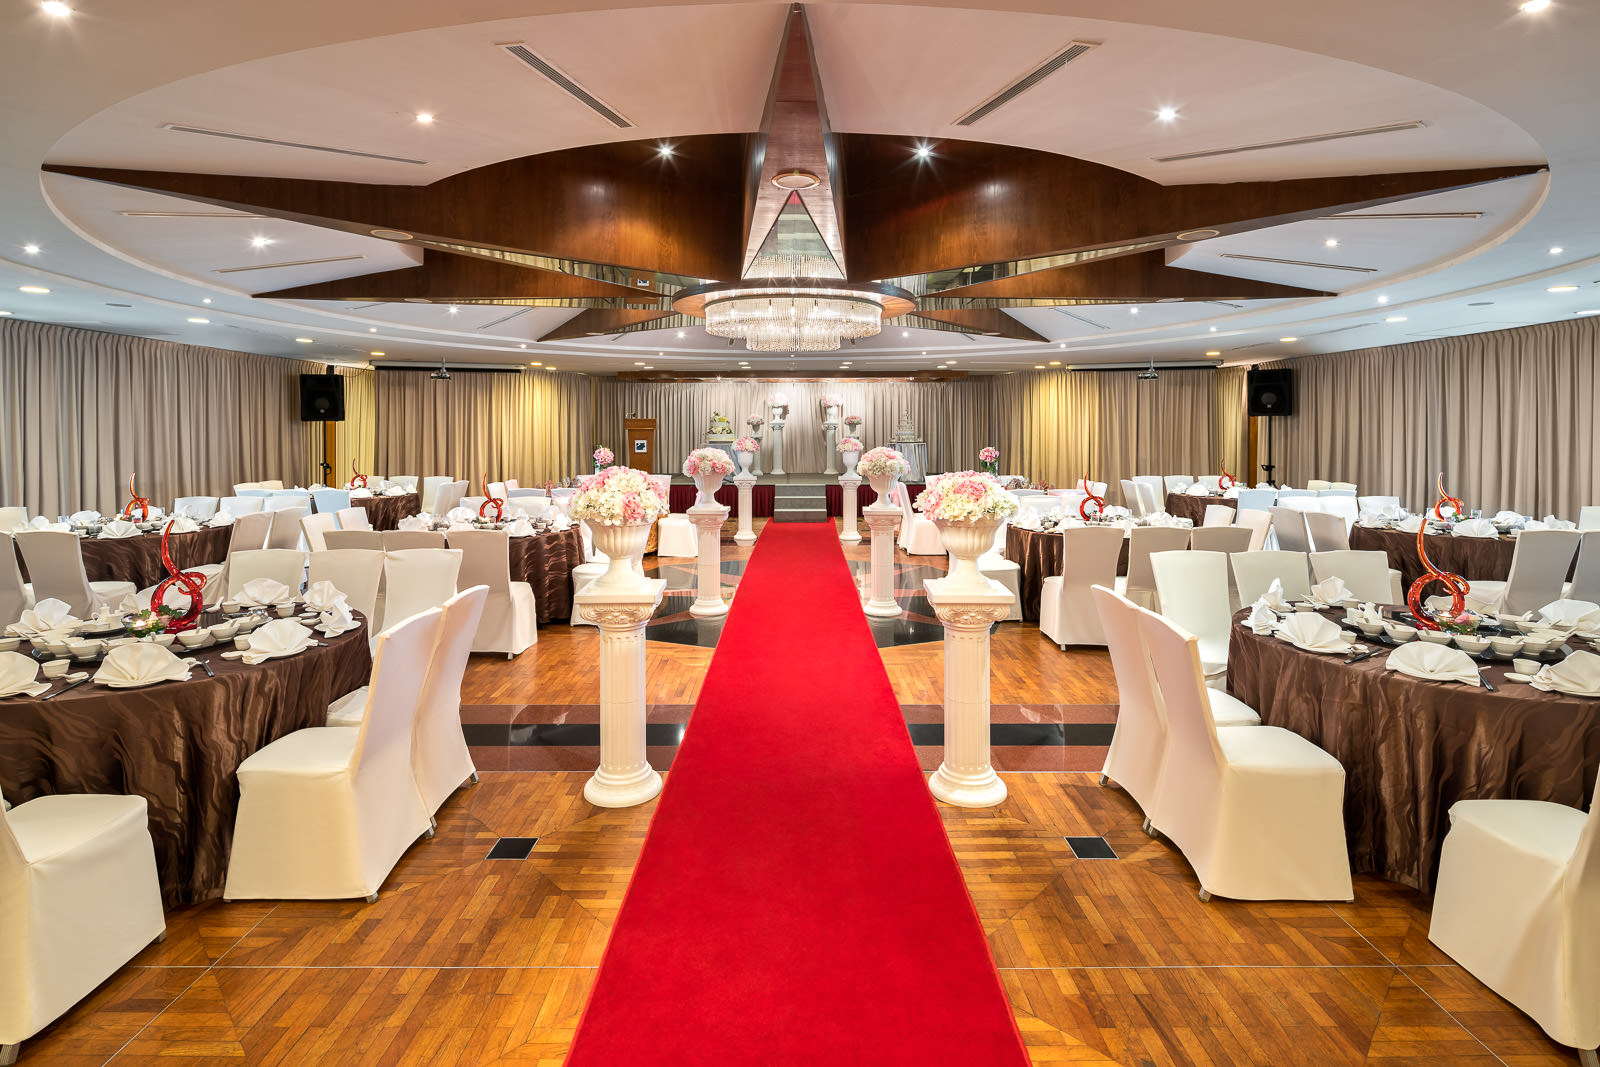 Interior photography of the seletar country club in singapore showing a wide angle photograph of the seletar ballroom wedding setup